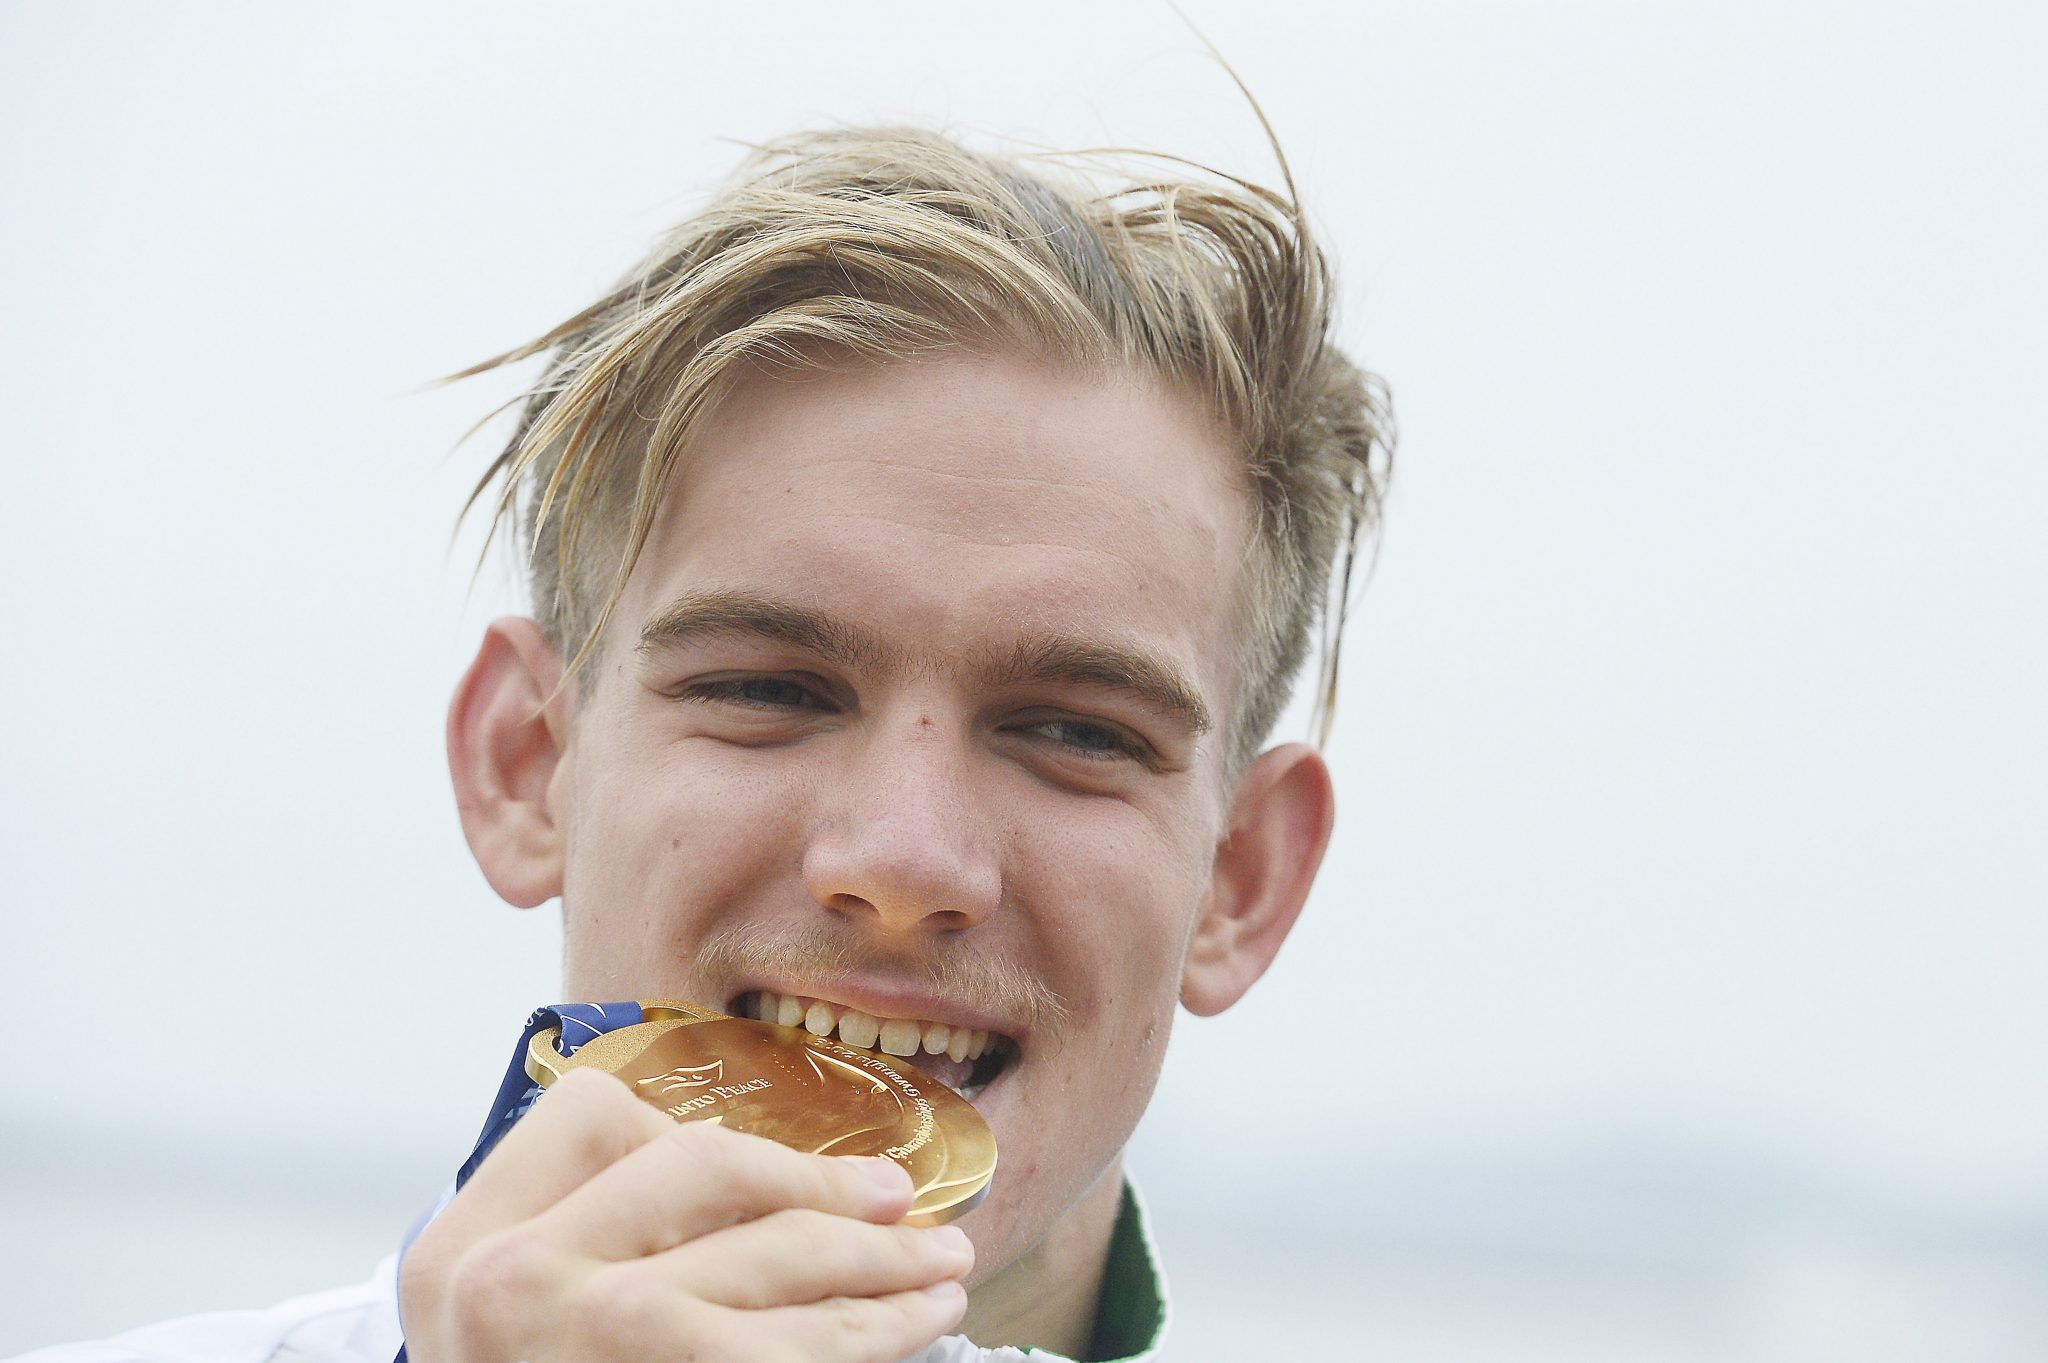 Kristóf Rasovszky Wins Hungary's First Ever Gold in 5km Open Water Swimming at World Championships post's picture